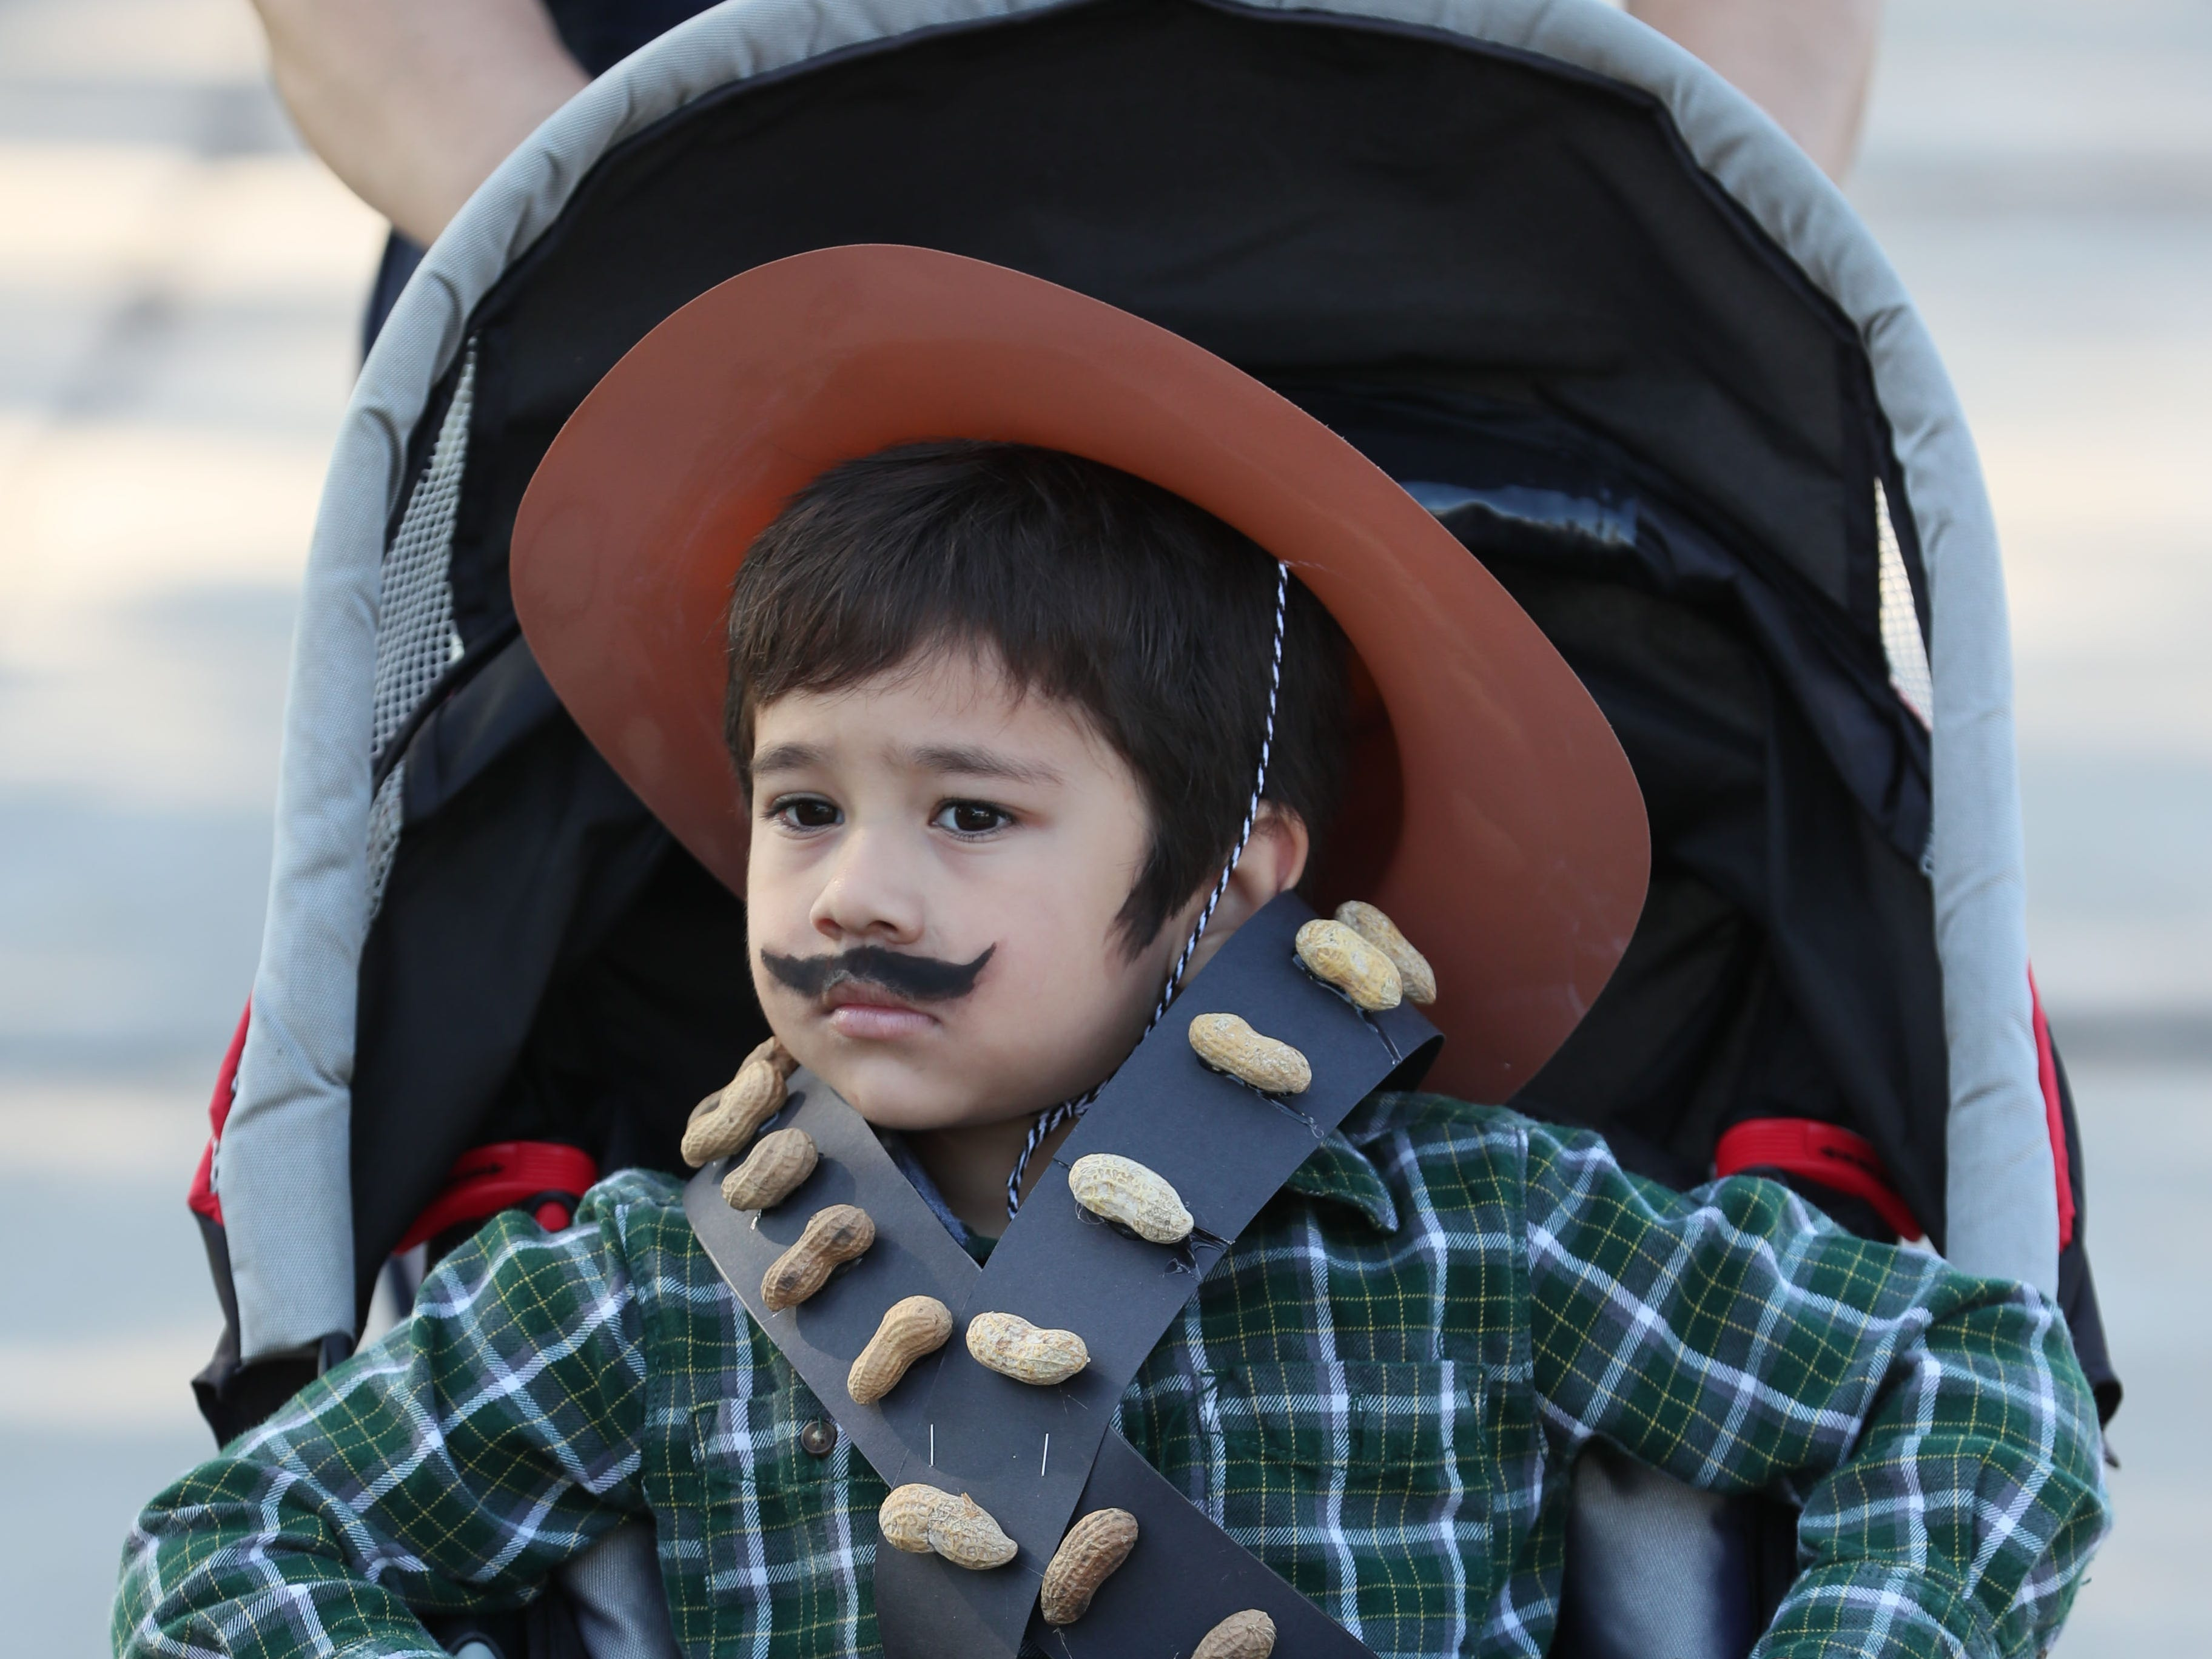 Fernando Navarro, 4, of Milwaukee rides to the parade in a costume recalling fighters for Mexican independence.